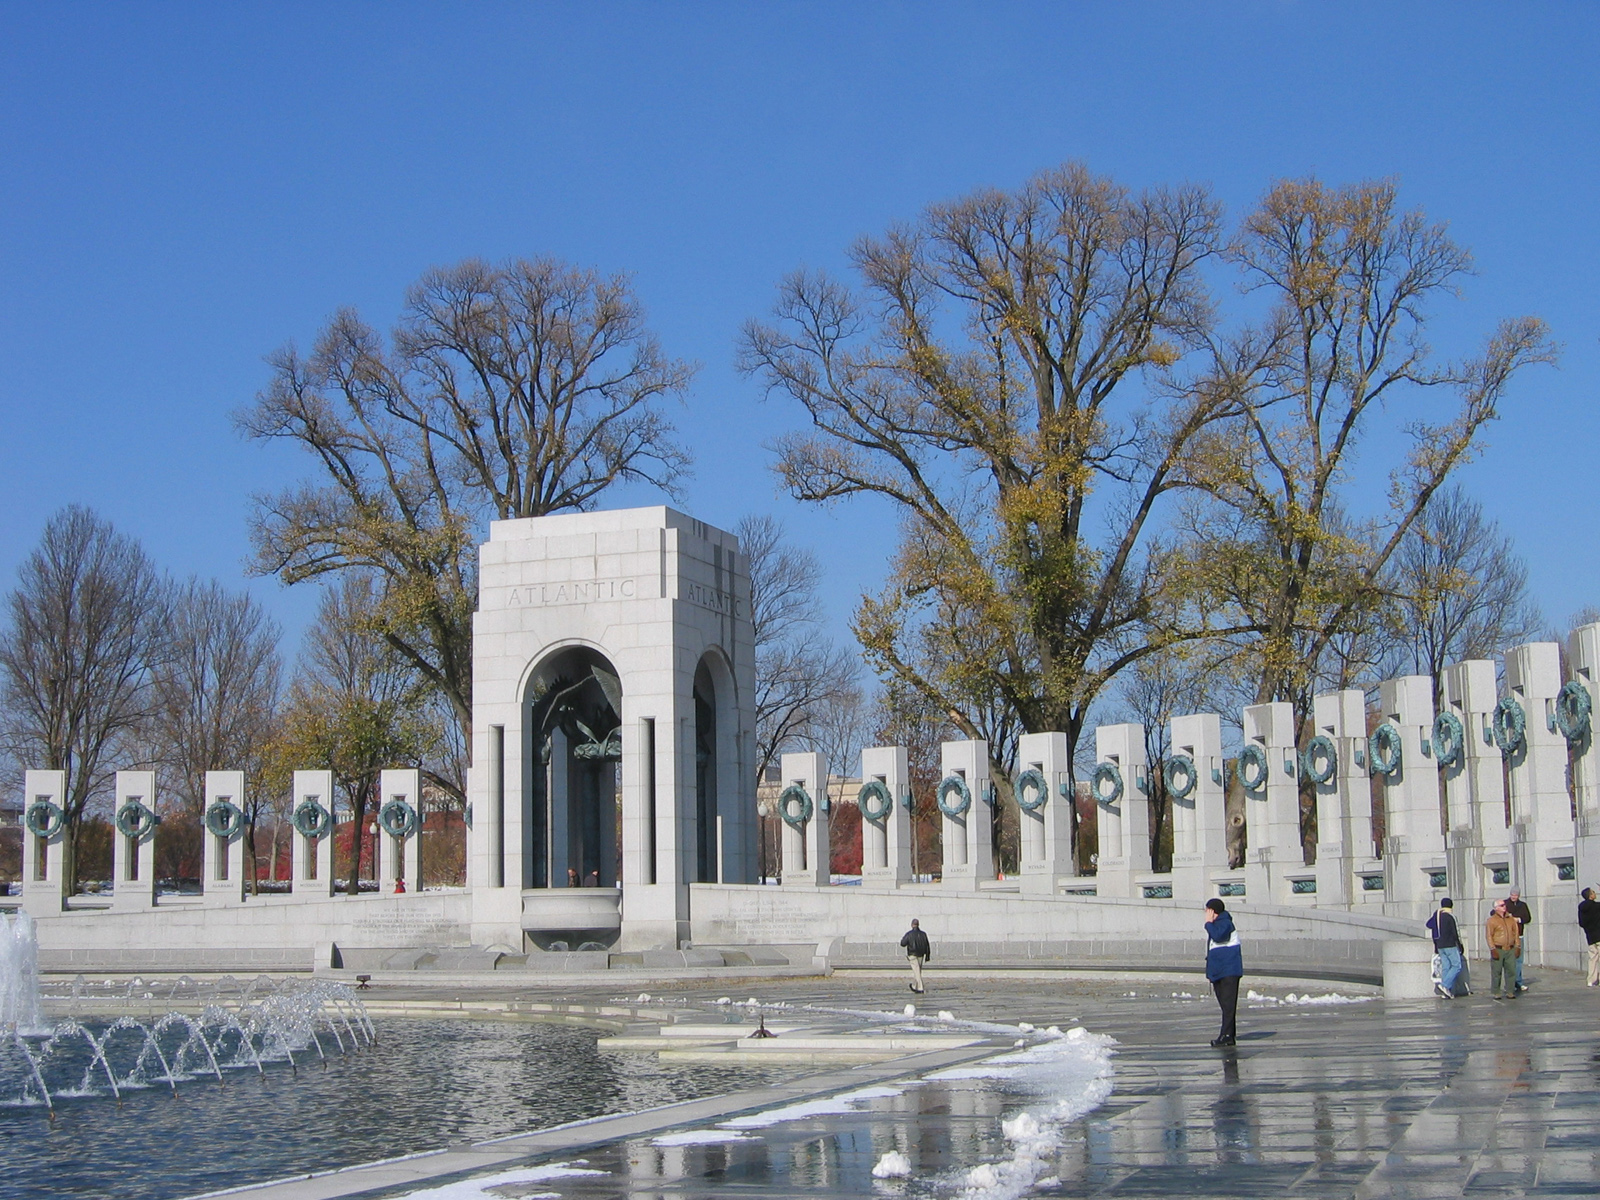 National World War II Memorial, on the National Mall in Washington, D.C. Photo taken by Kmf164 on December 6, 2005.